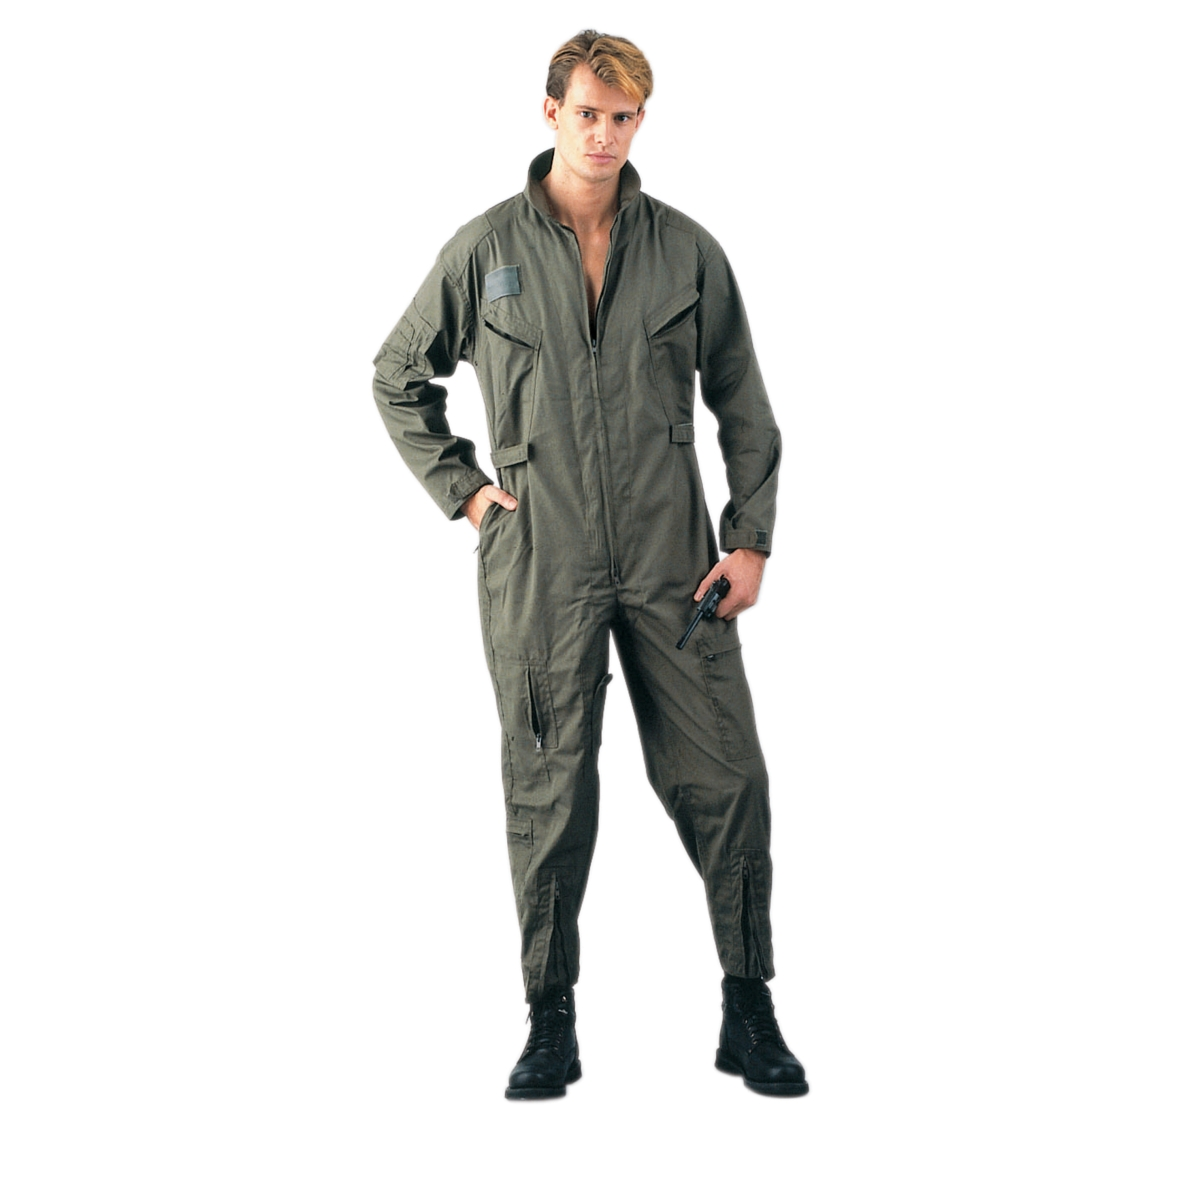 Olive Drab Air Force CWU-27P Style Flightsuit, Coverall by Rothco